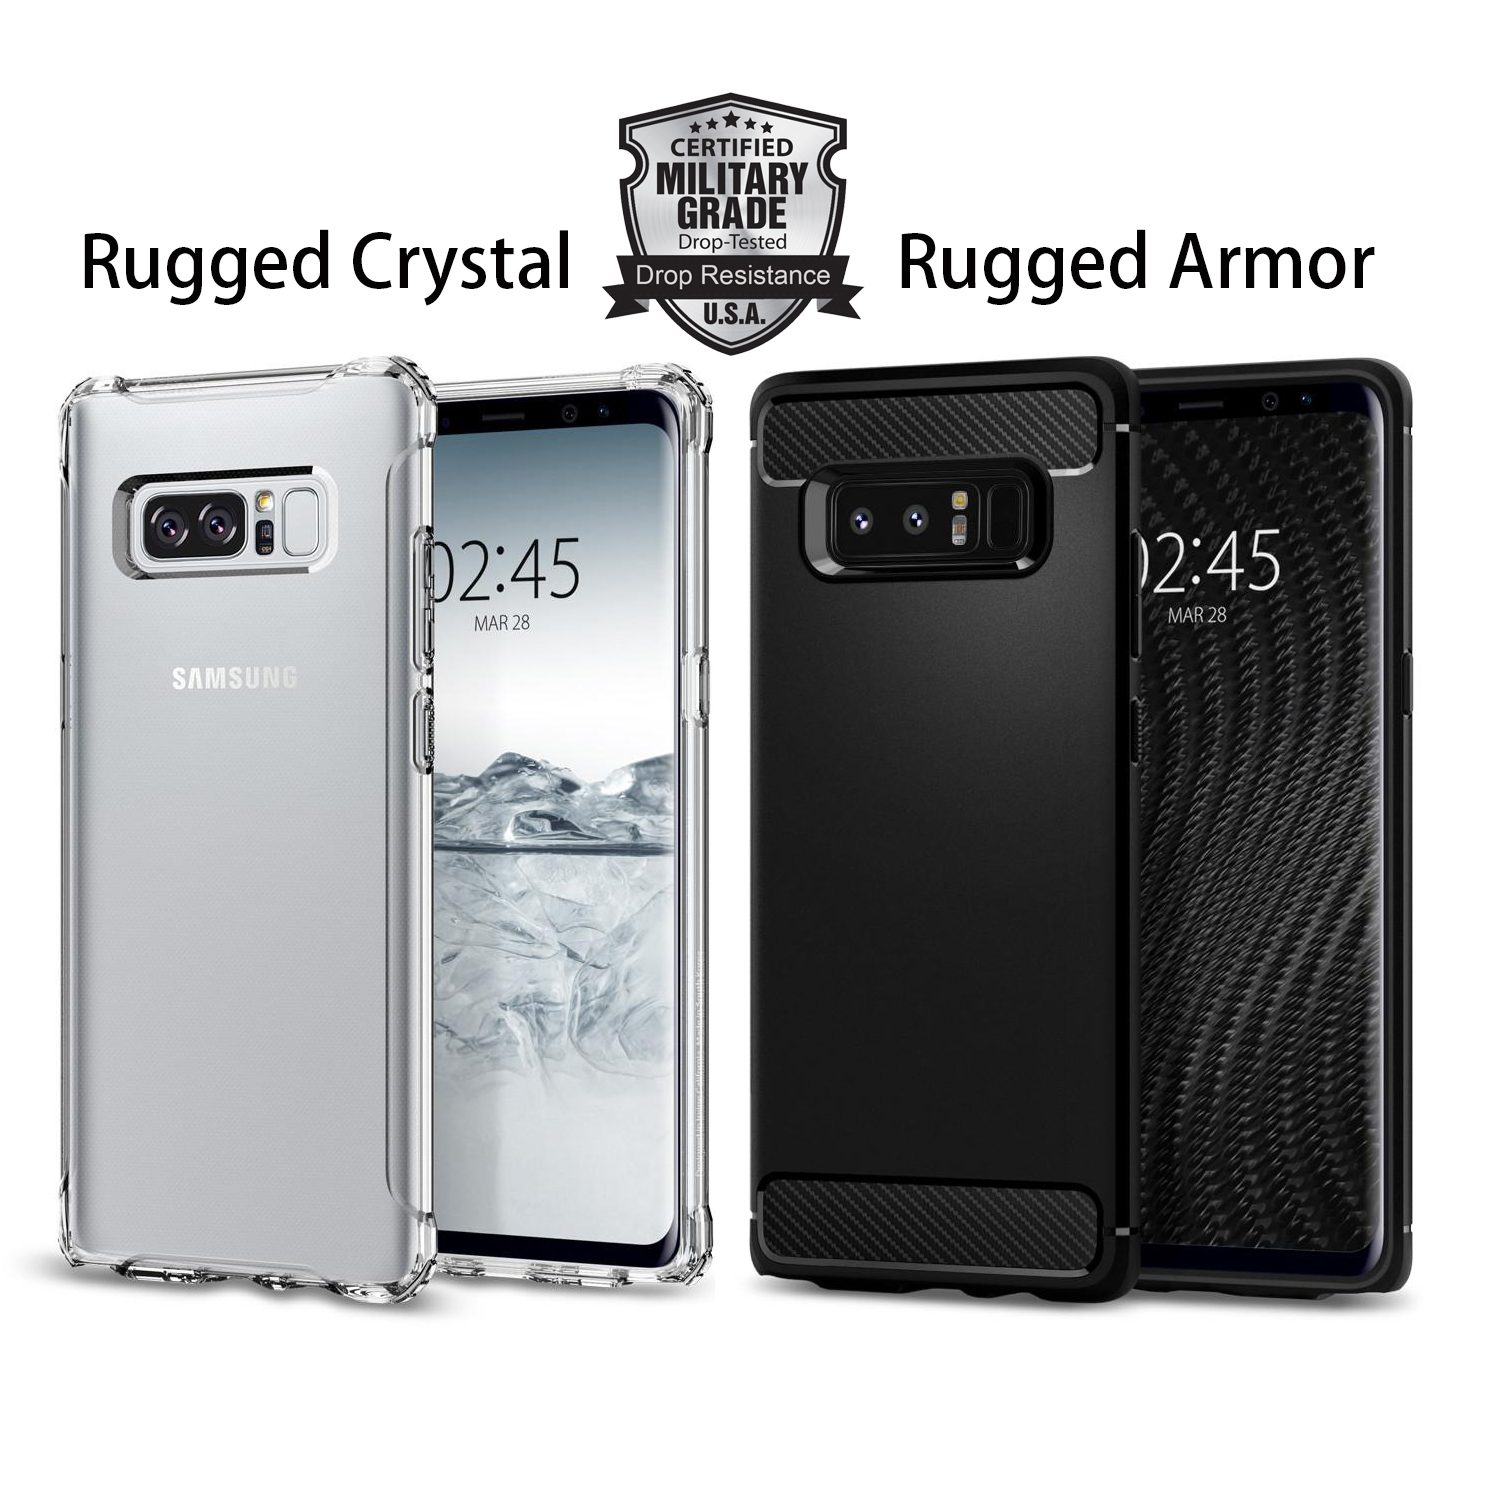 chances new lg that motorola smartphone phone review an looking then maybe androidheadlines you cat featured a nexus or for rugged rug samsung market ah com the if in are